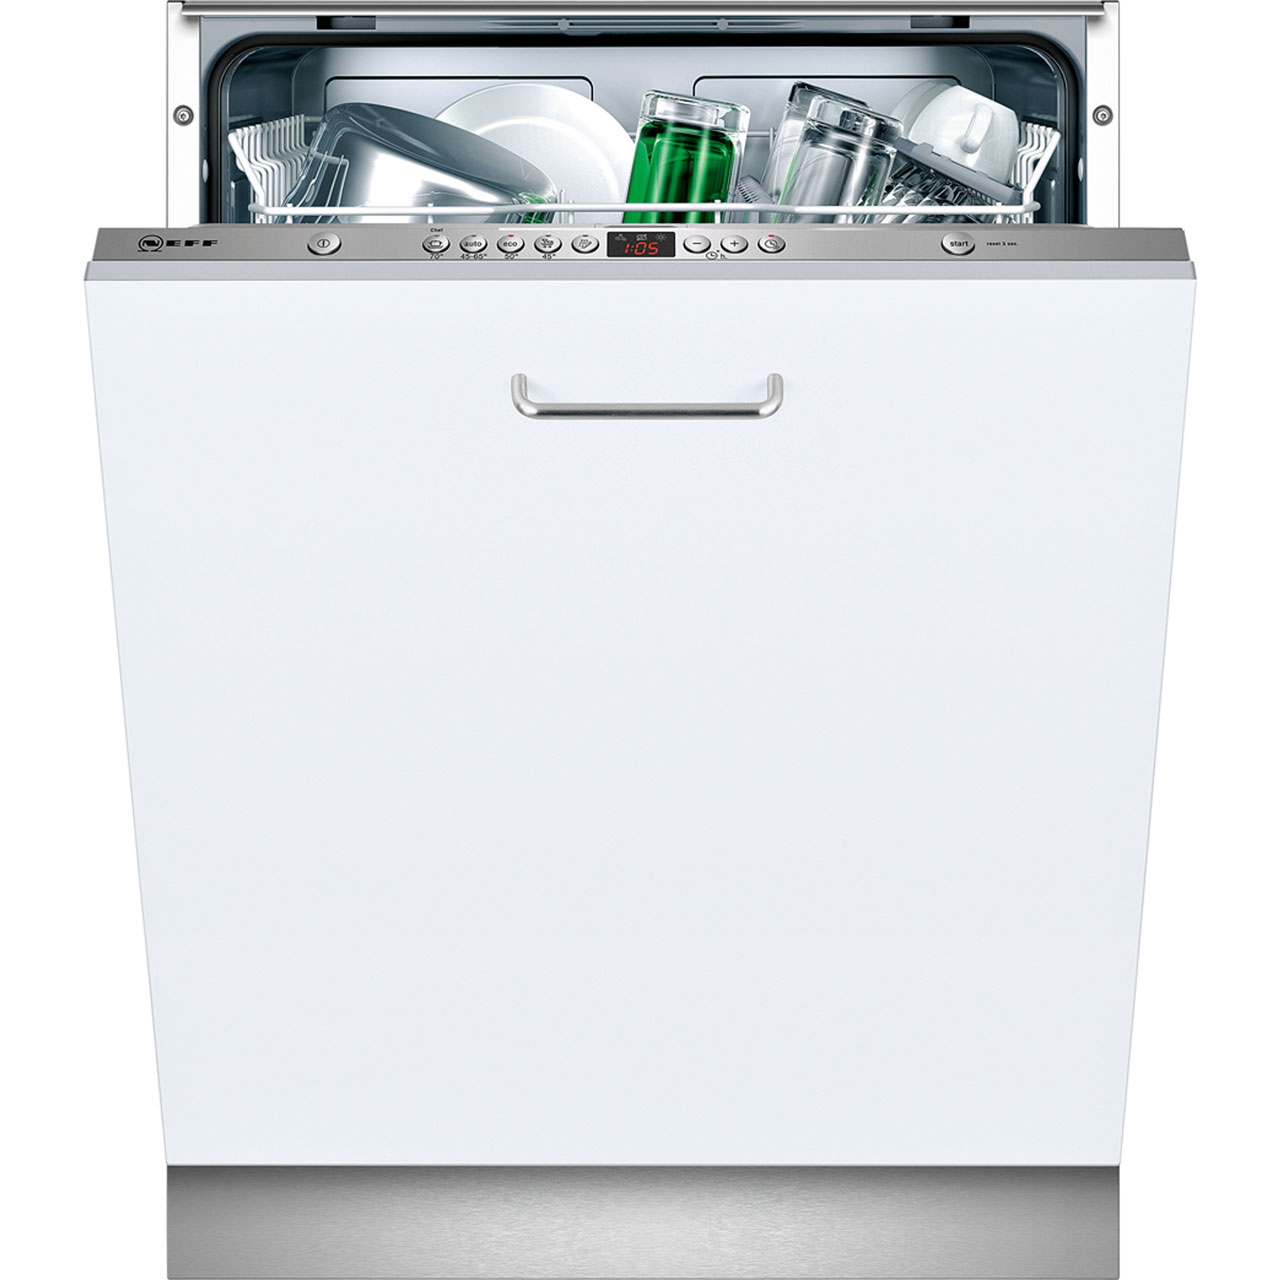 Neff S51L53X0GB Fully Integrated Standard Dishwasher - Stainless Steel